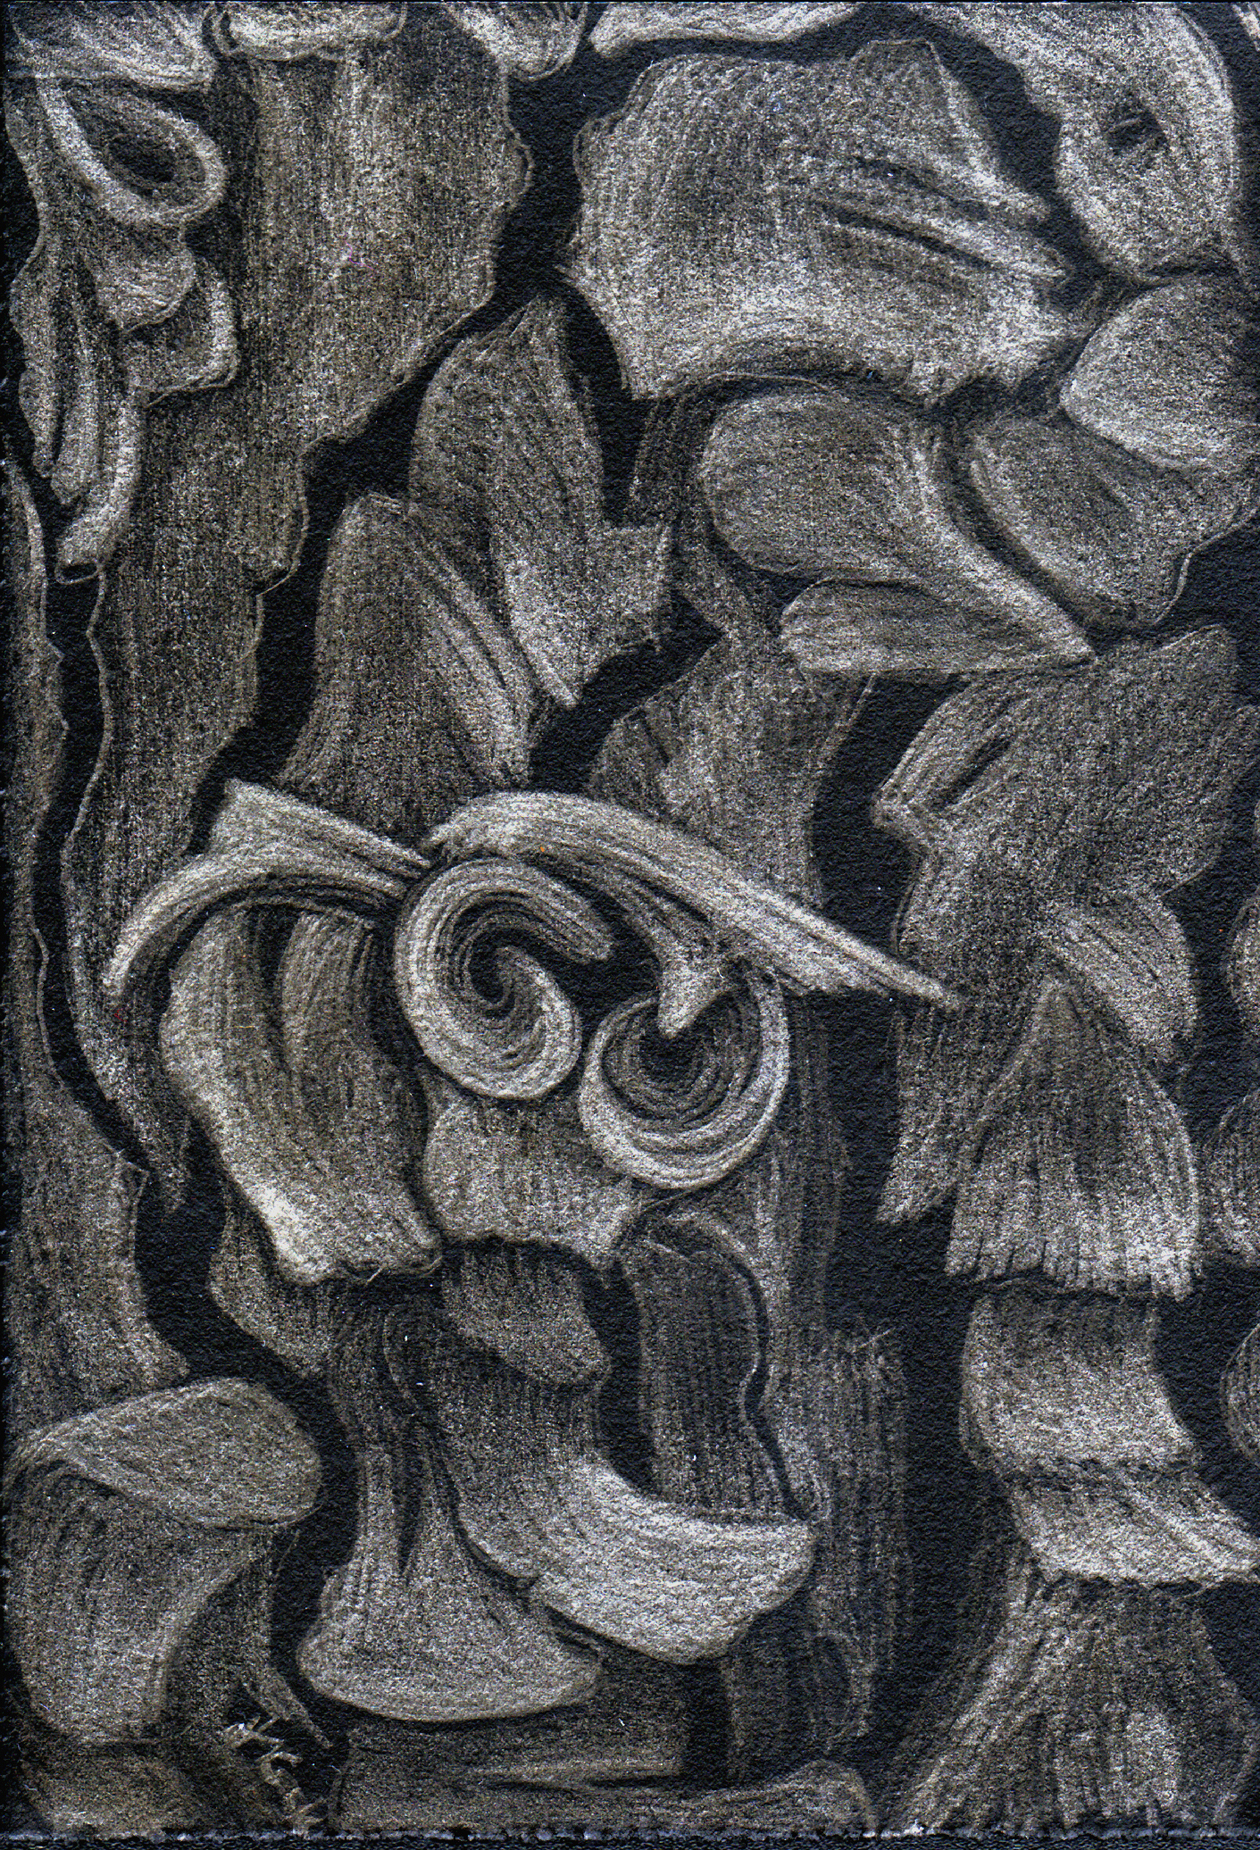 Ariadne's Thread II - pine tree bark, silverpoint on black, Jeannine Cook artist